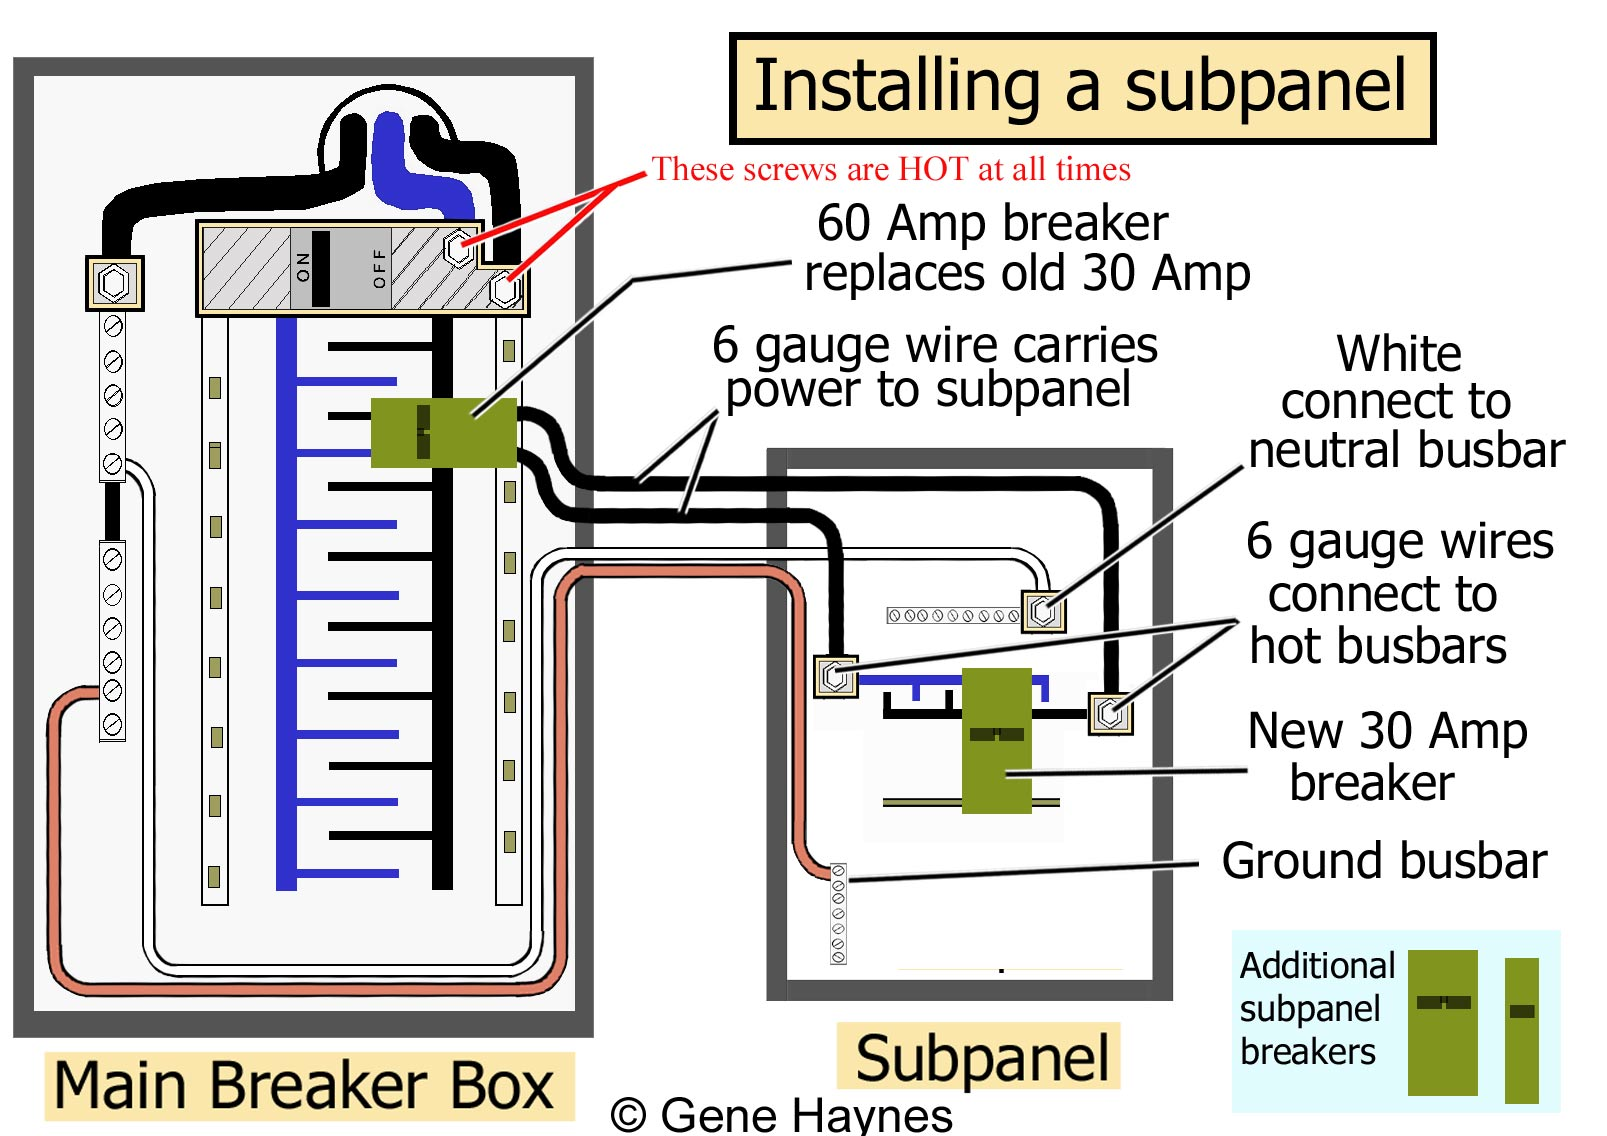 1) 60-150 Amp breaker replaces any 240 breaker in main box near top of box  2) Two Hot wires connect ...